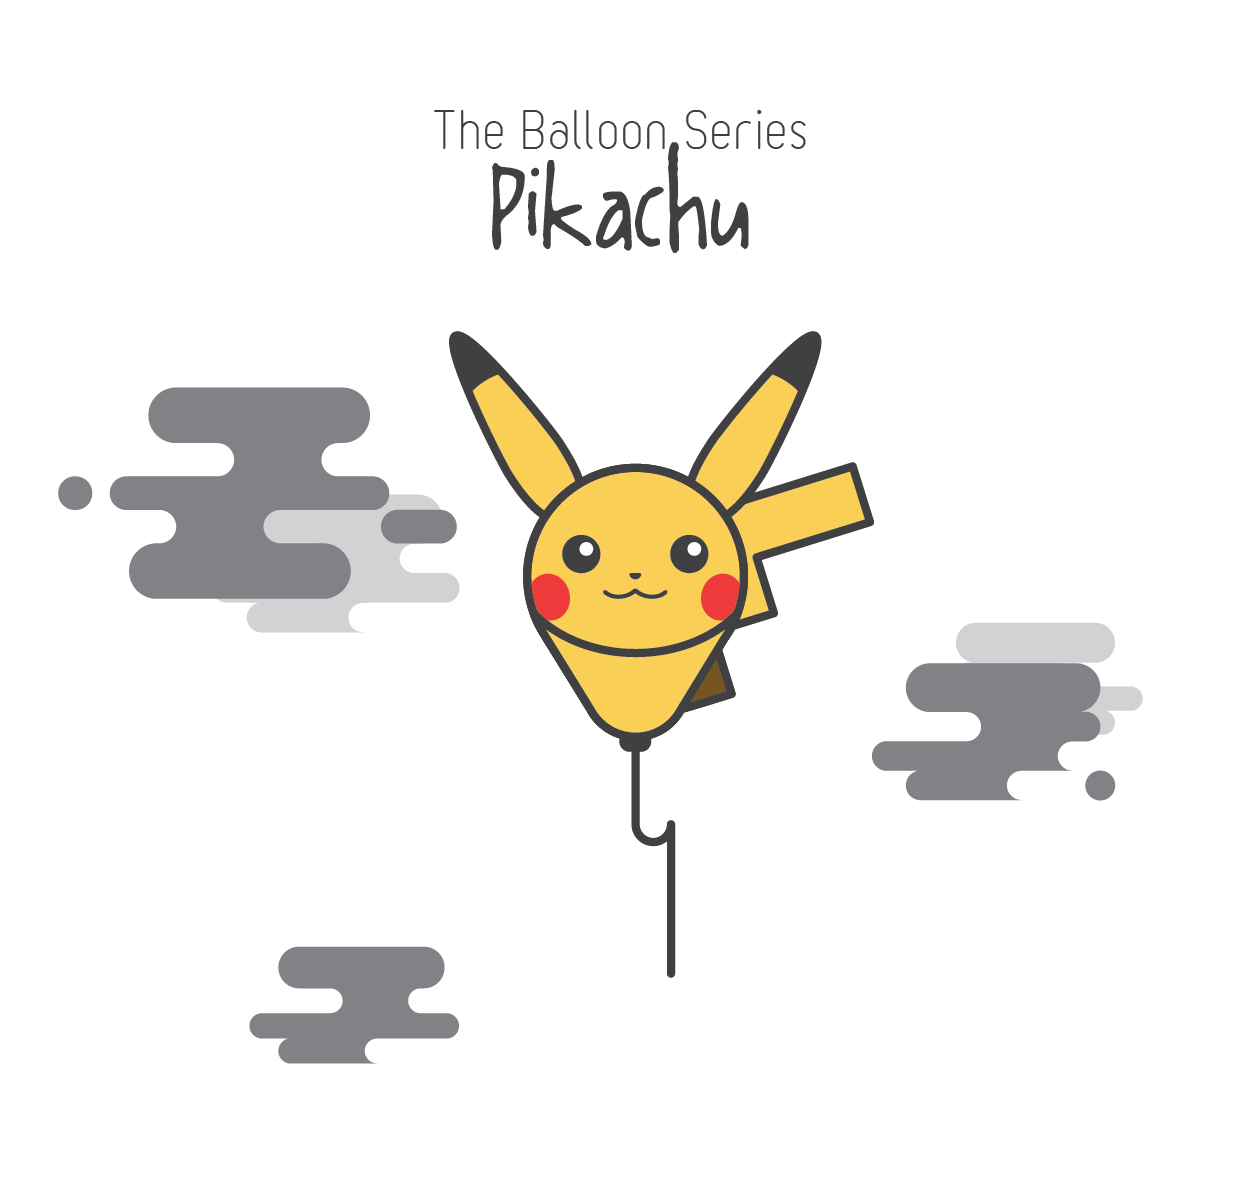 The Balloon Series - Pikachu